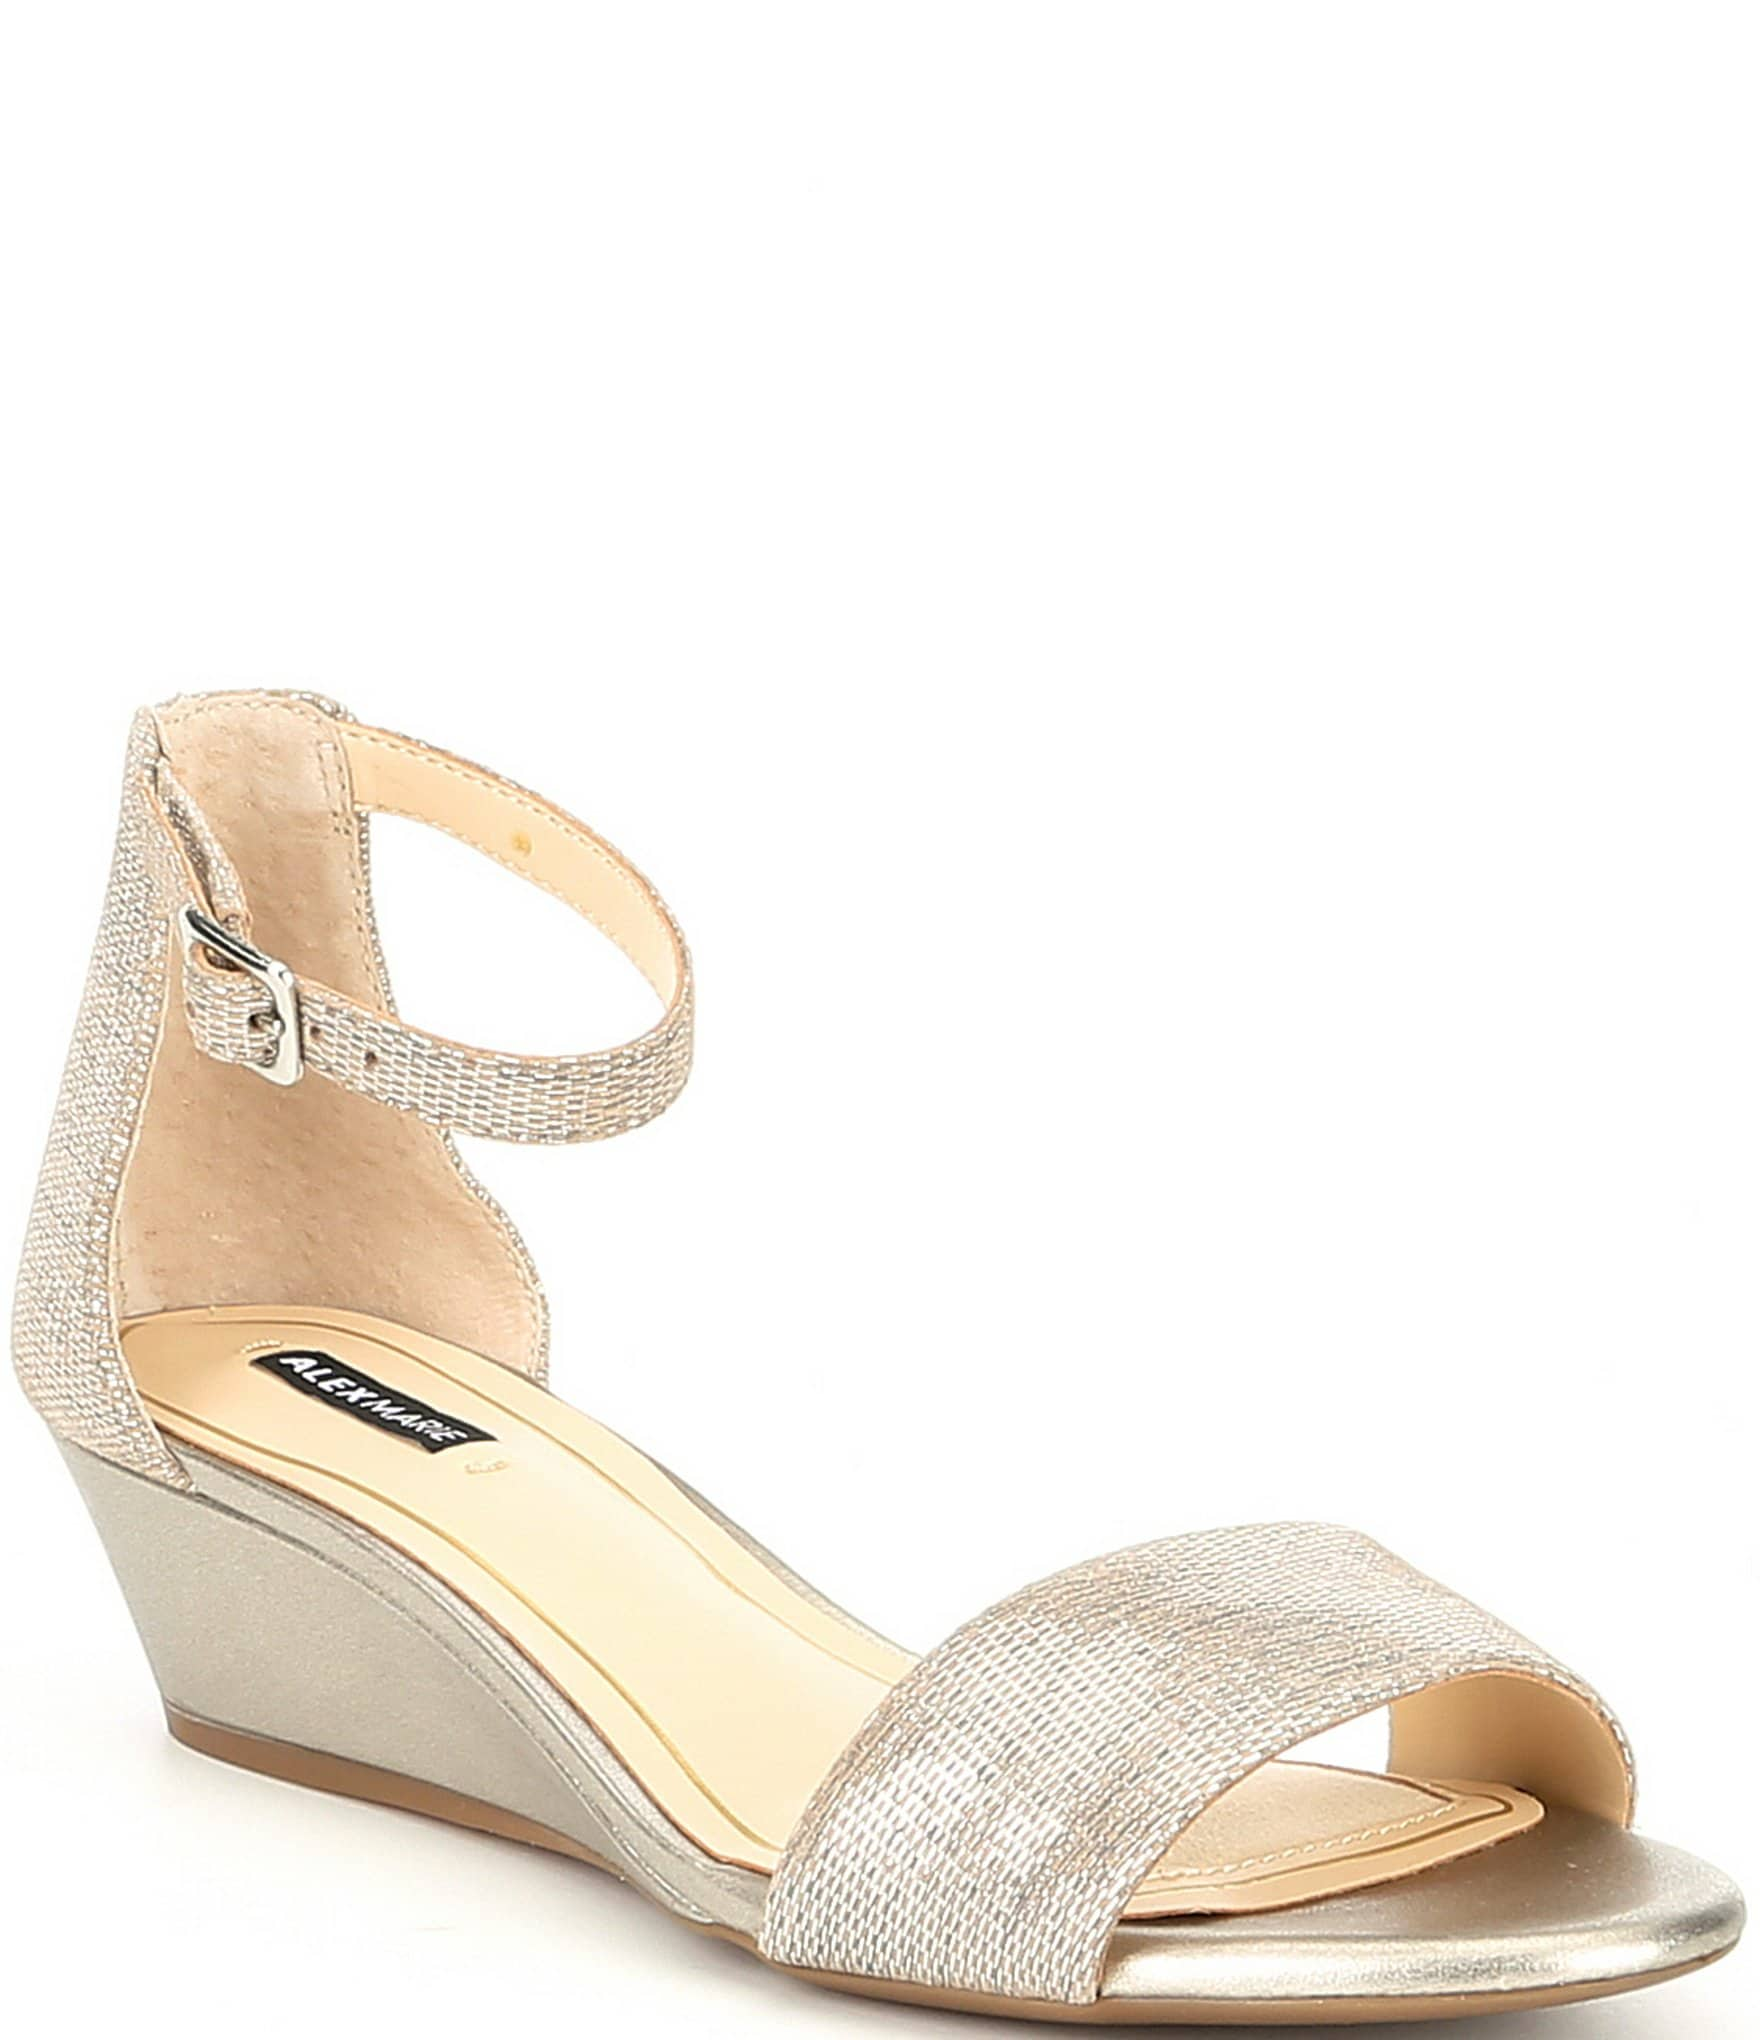 7b3c81dd9d0 Alex Marie Mairitwo Metallic Leather Ankle Strap Wedge Sandals